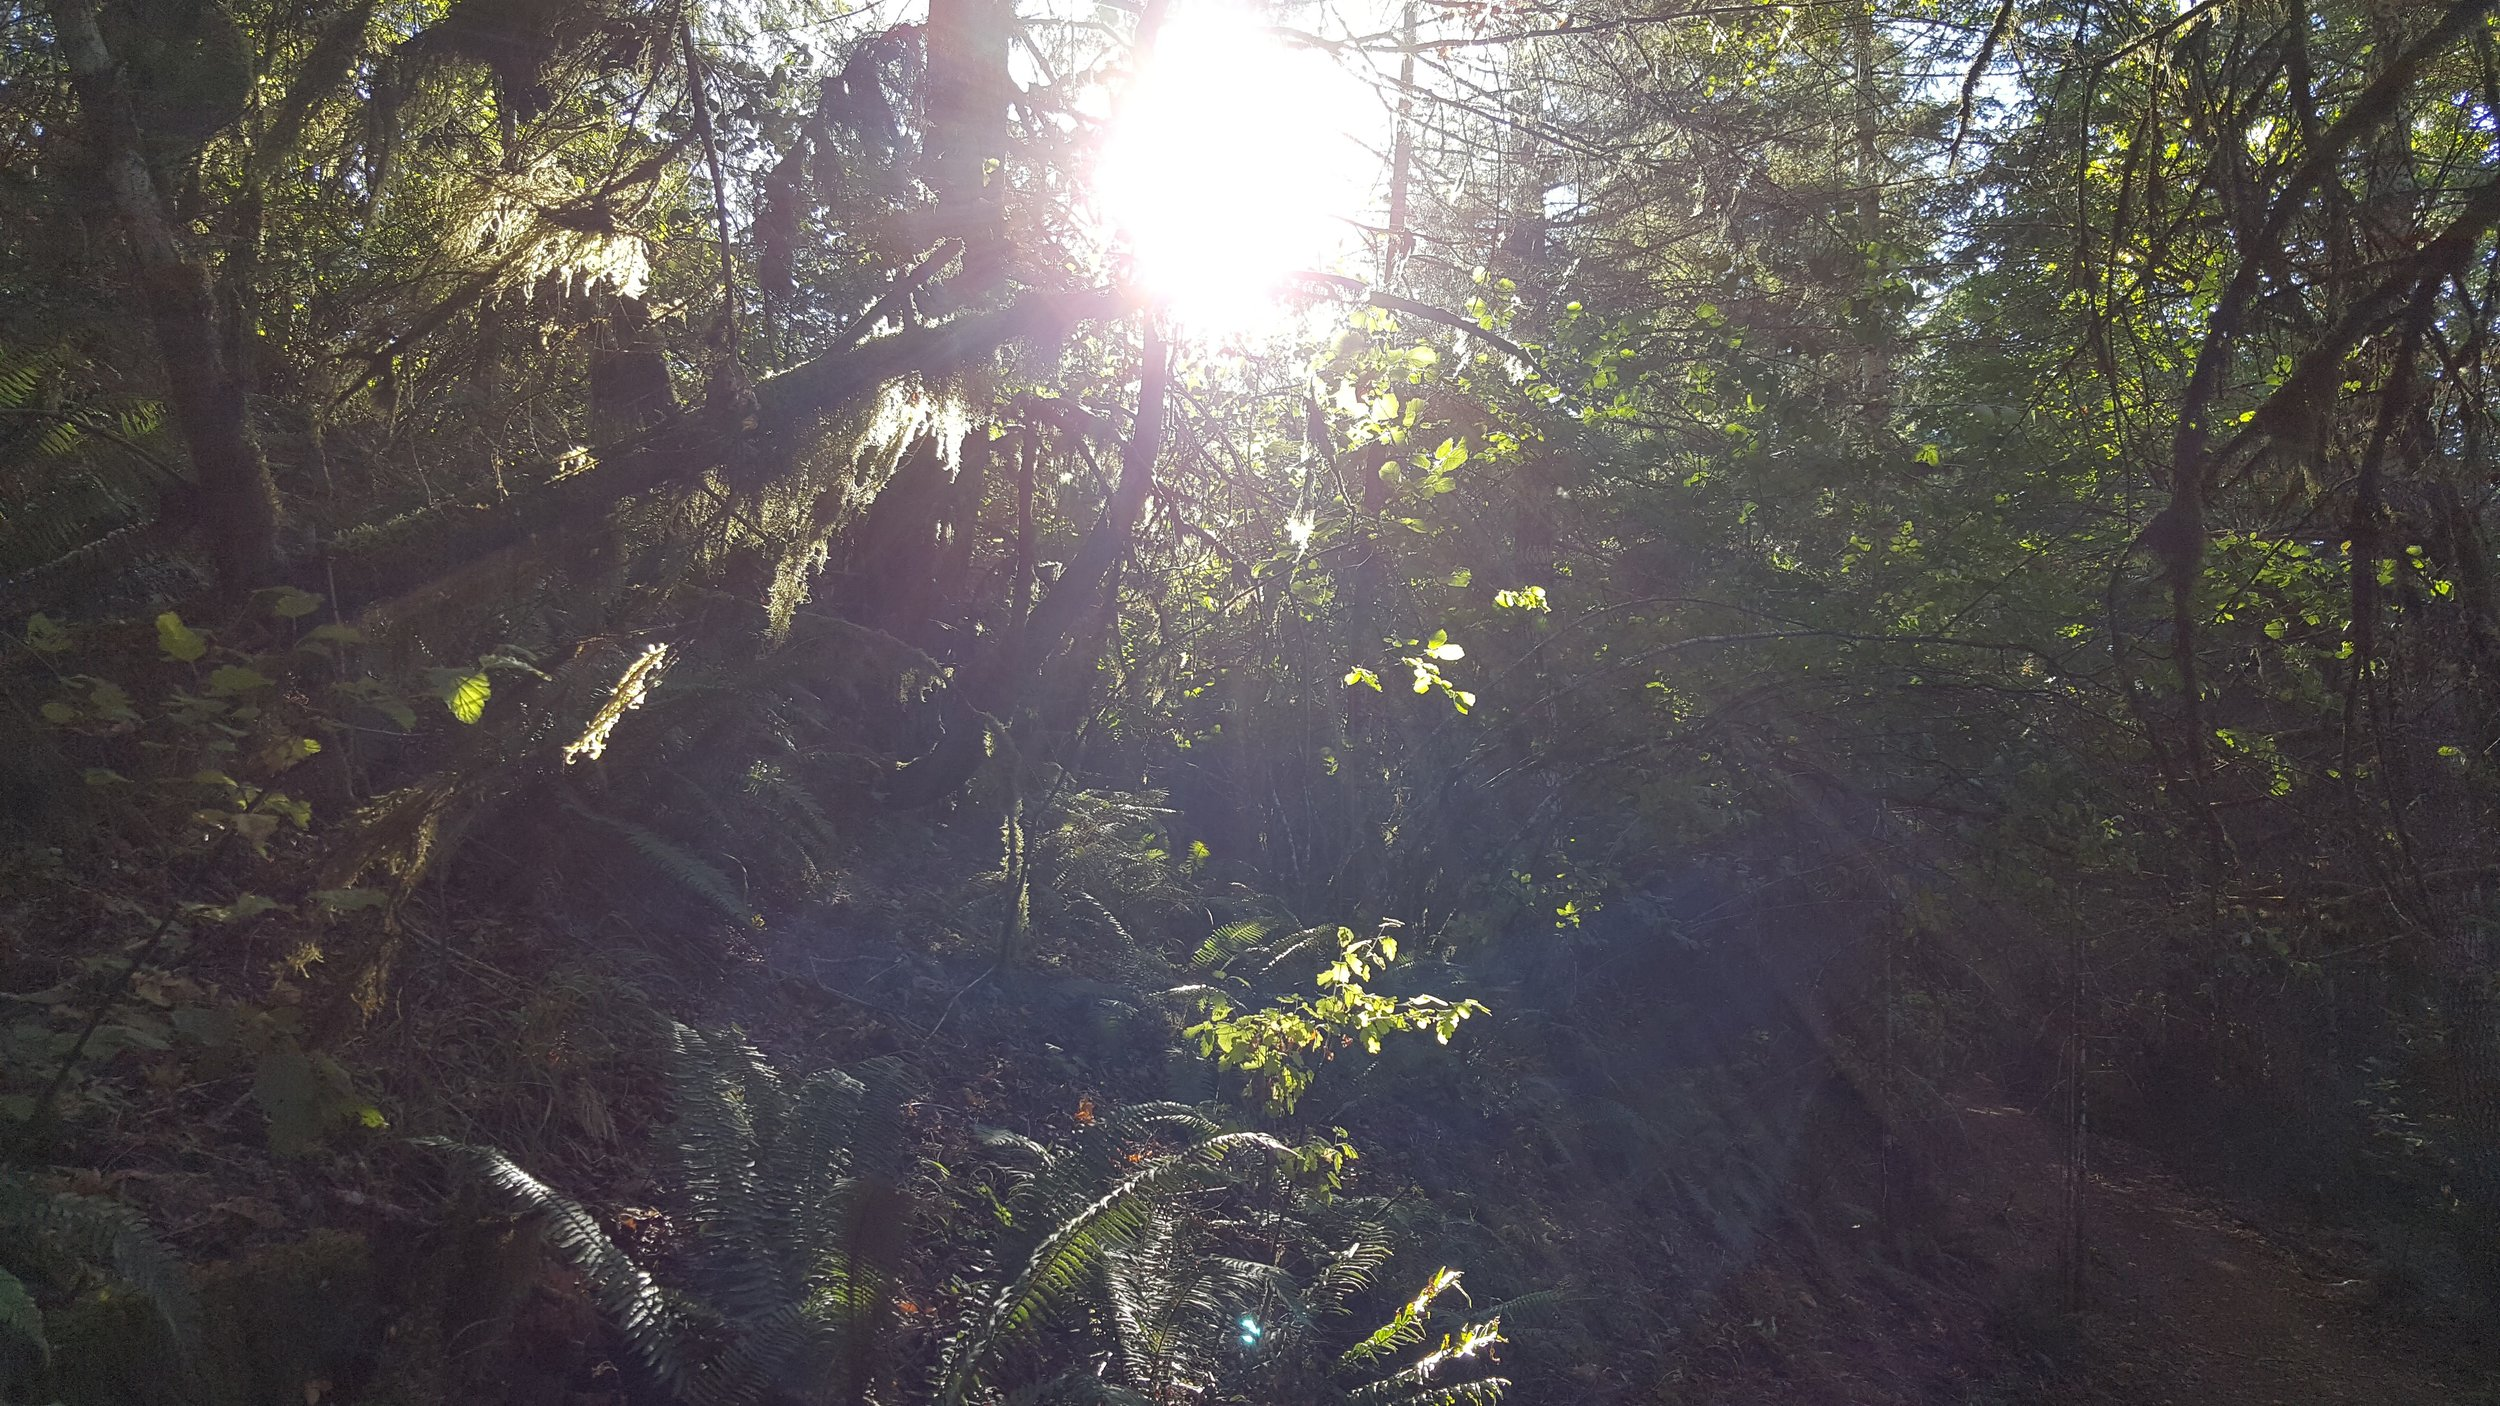 Light pouring into the forest